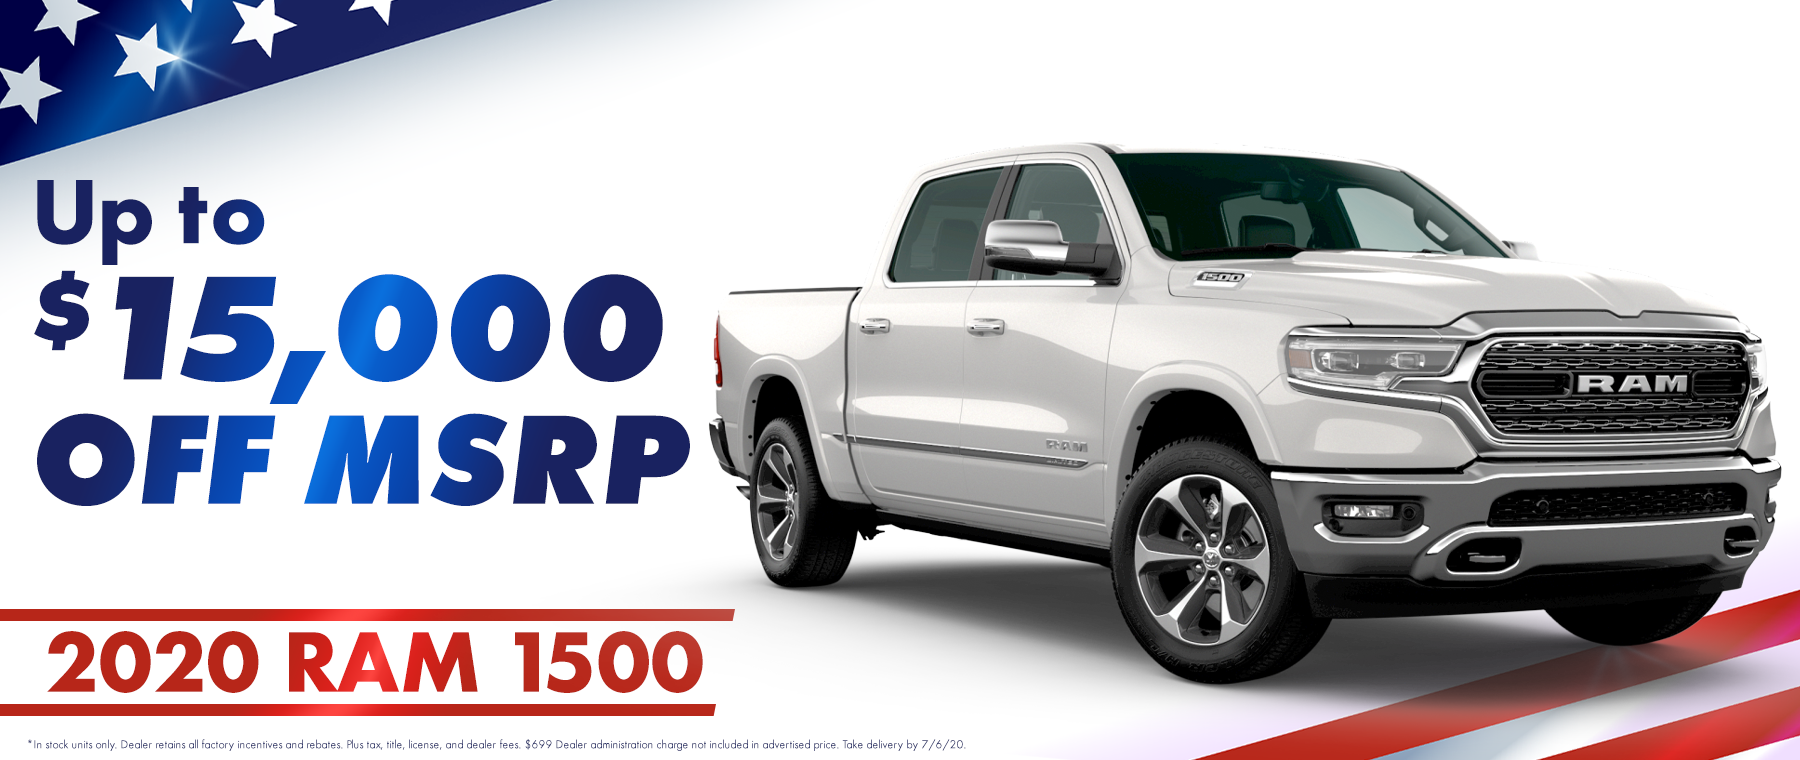 2020 Ram 1500 up to $15,000 off MSRP